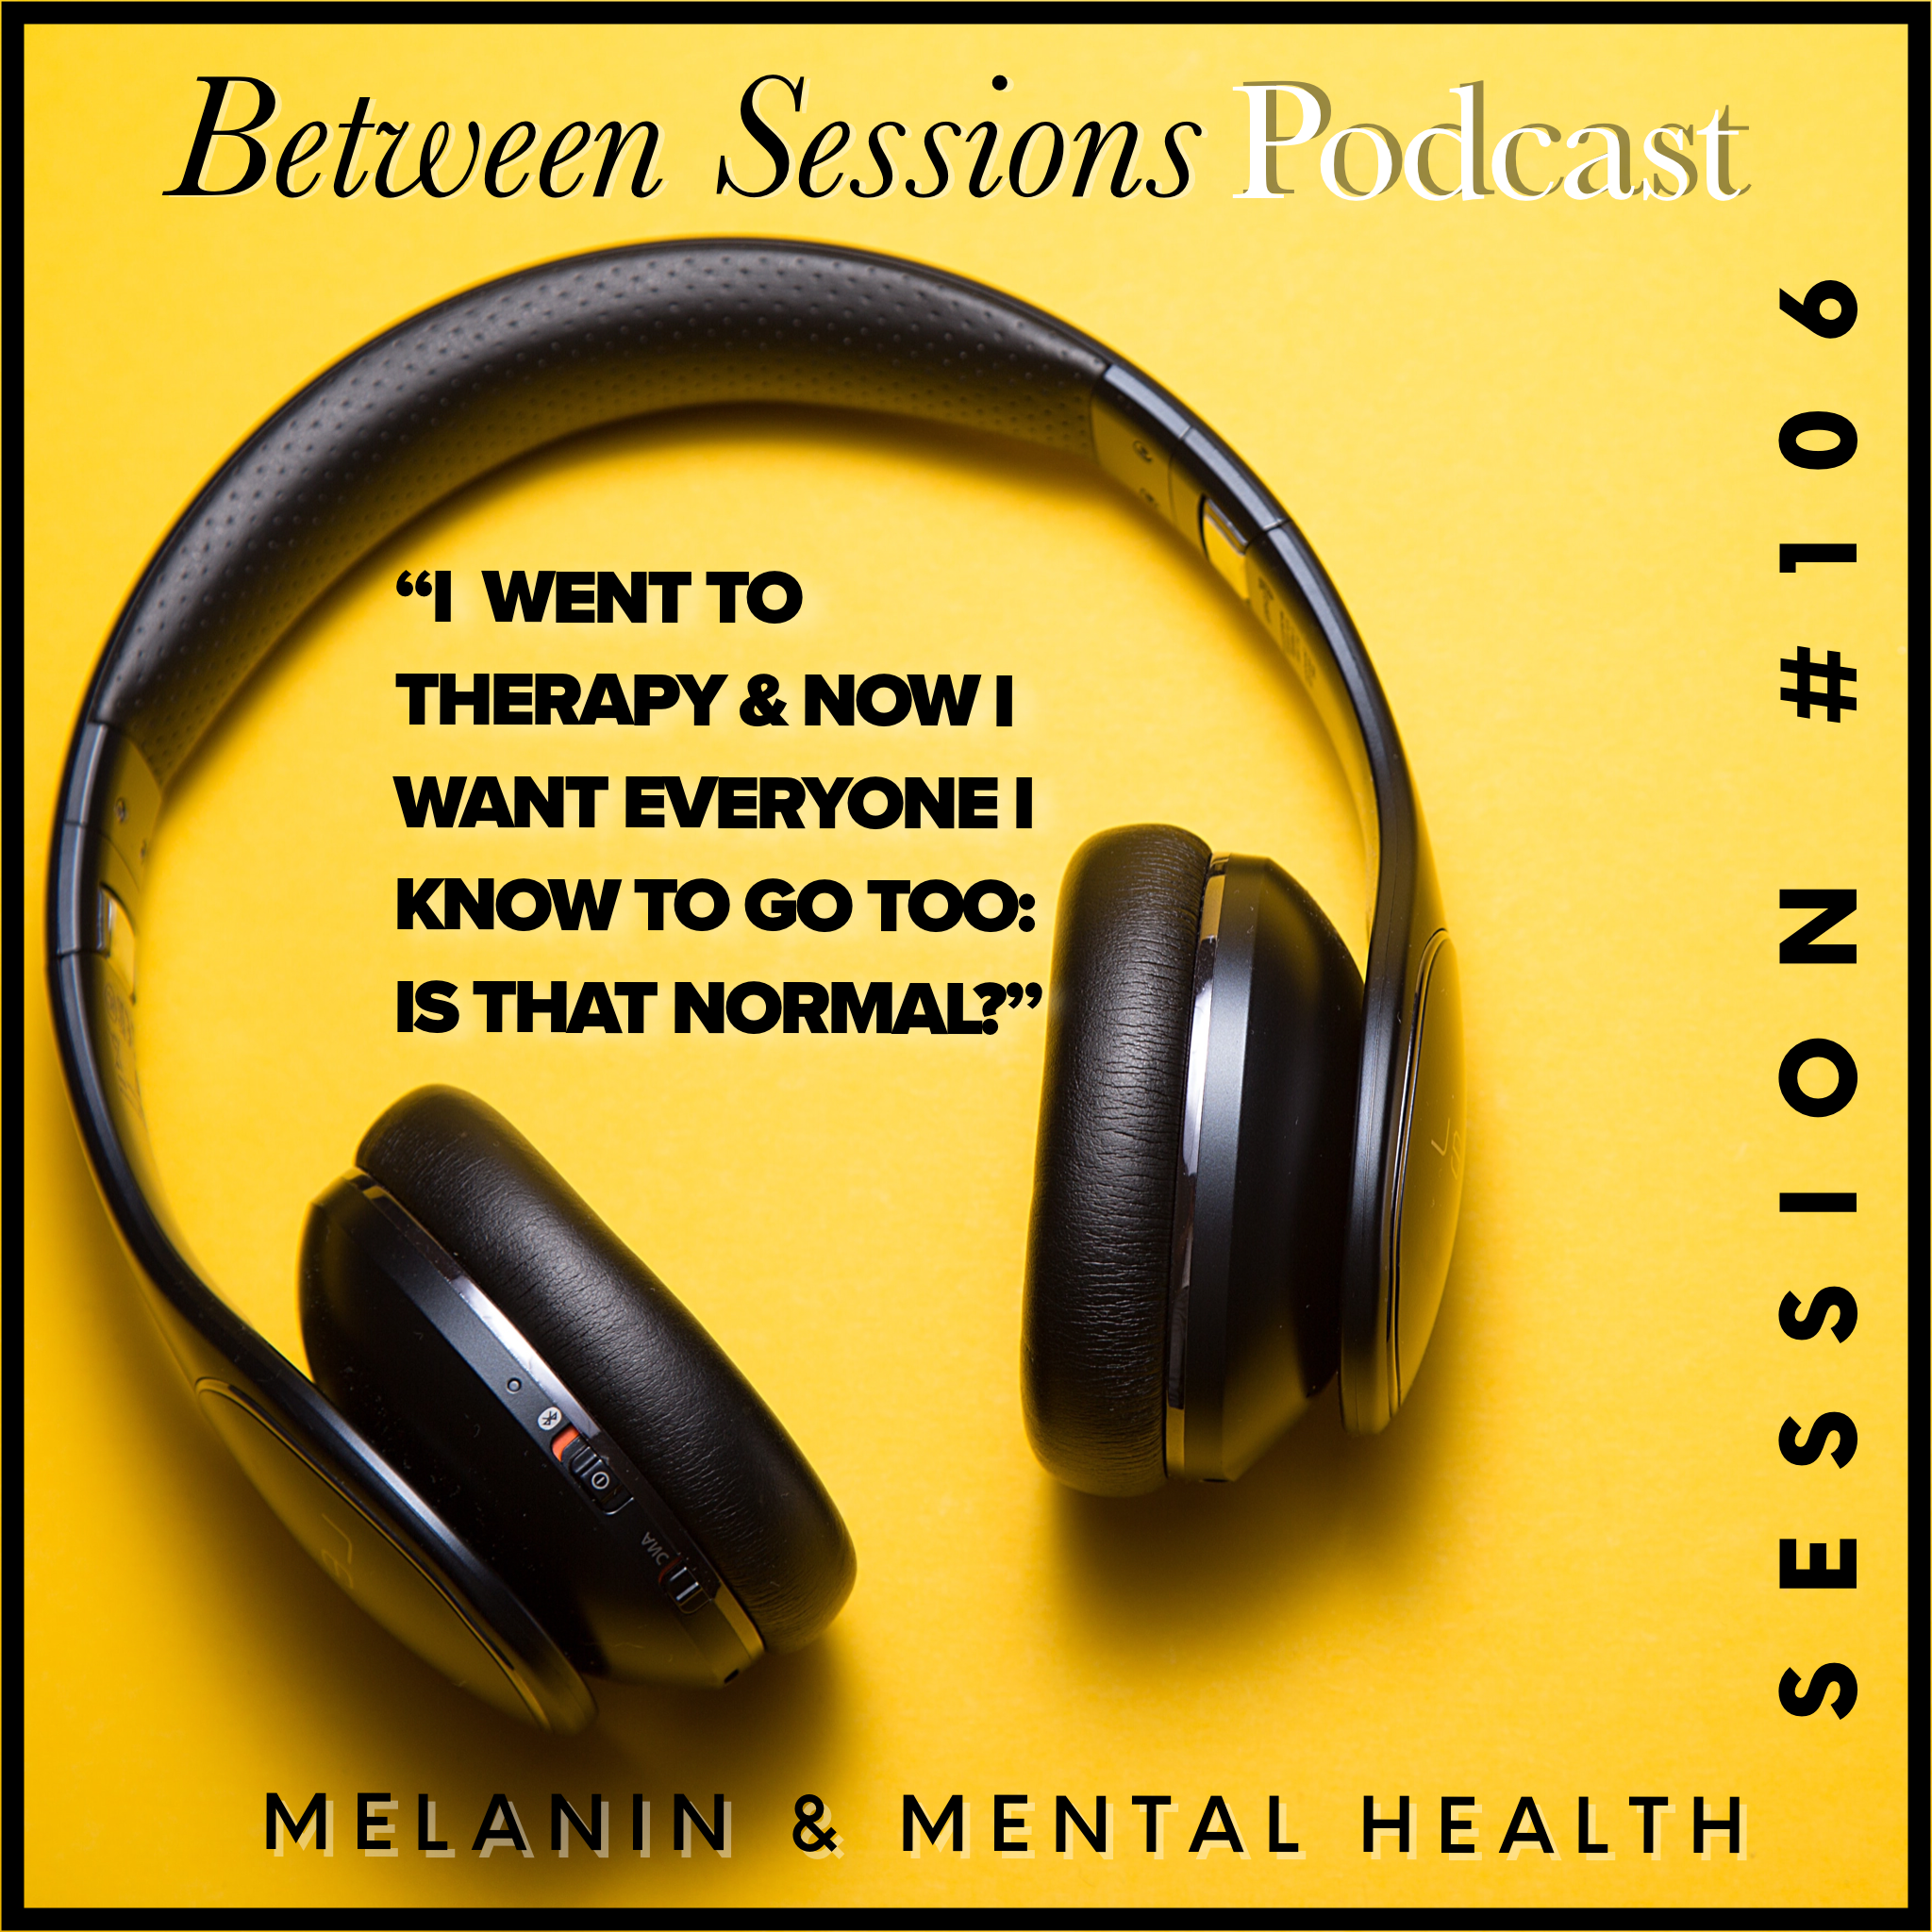 Session 106: I went to therapy and now I want everyone to go too: Is That Normal?